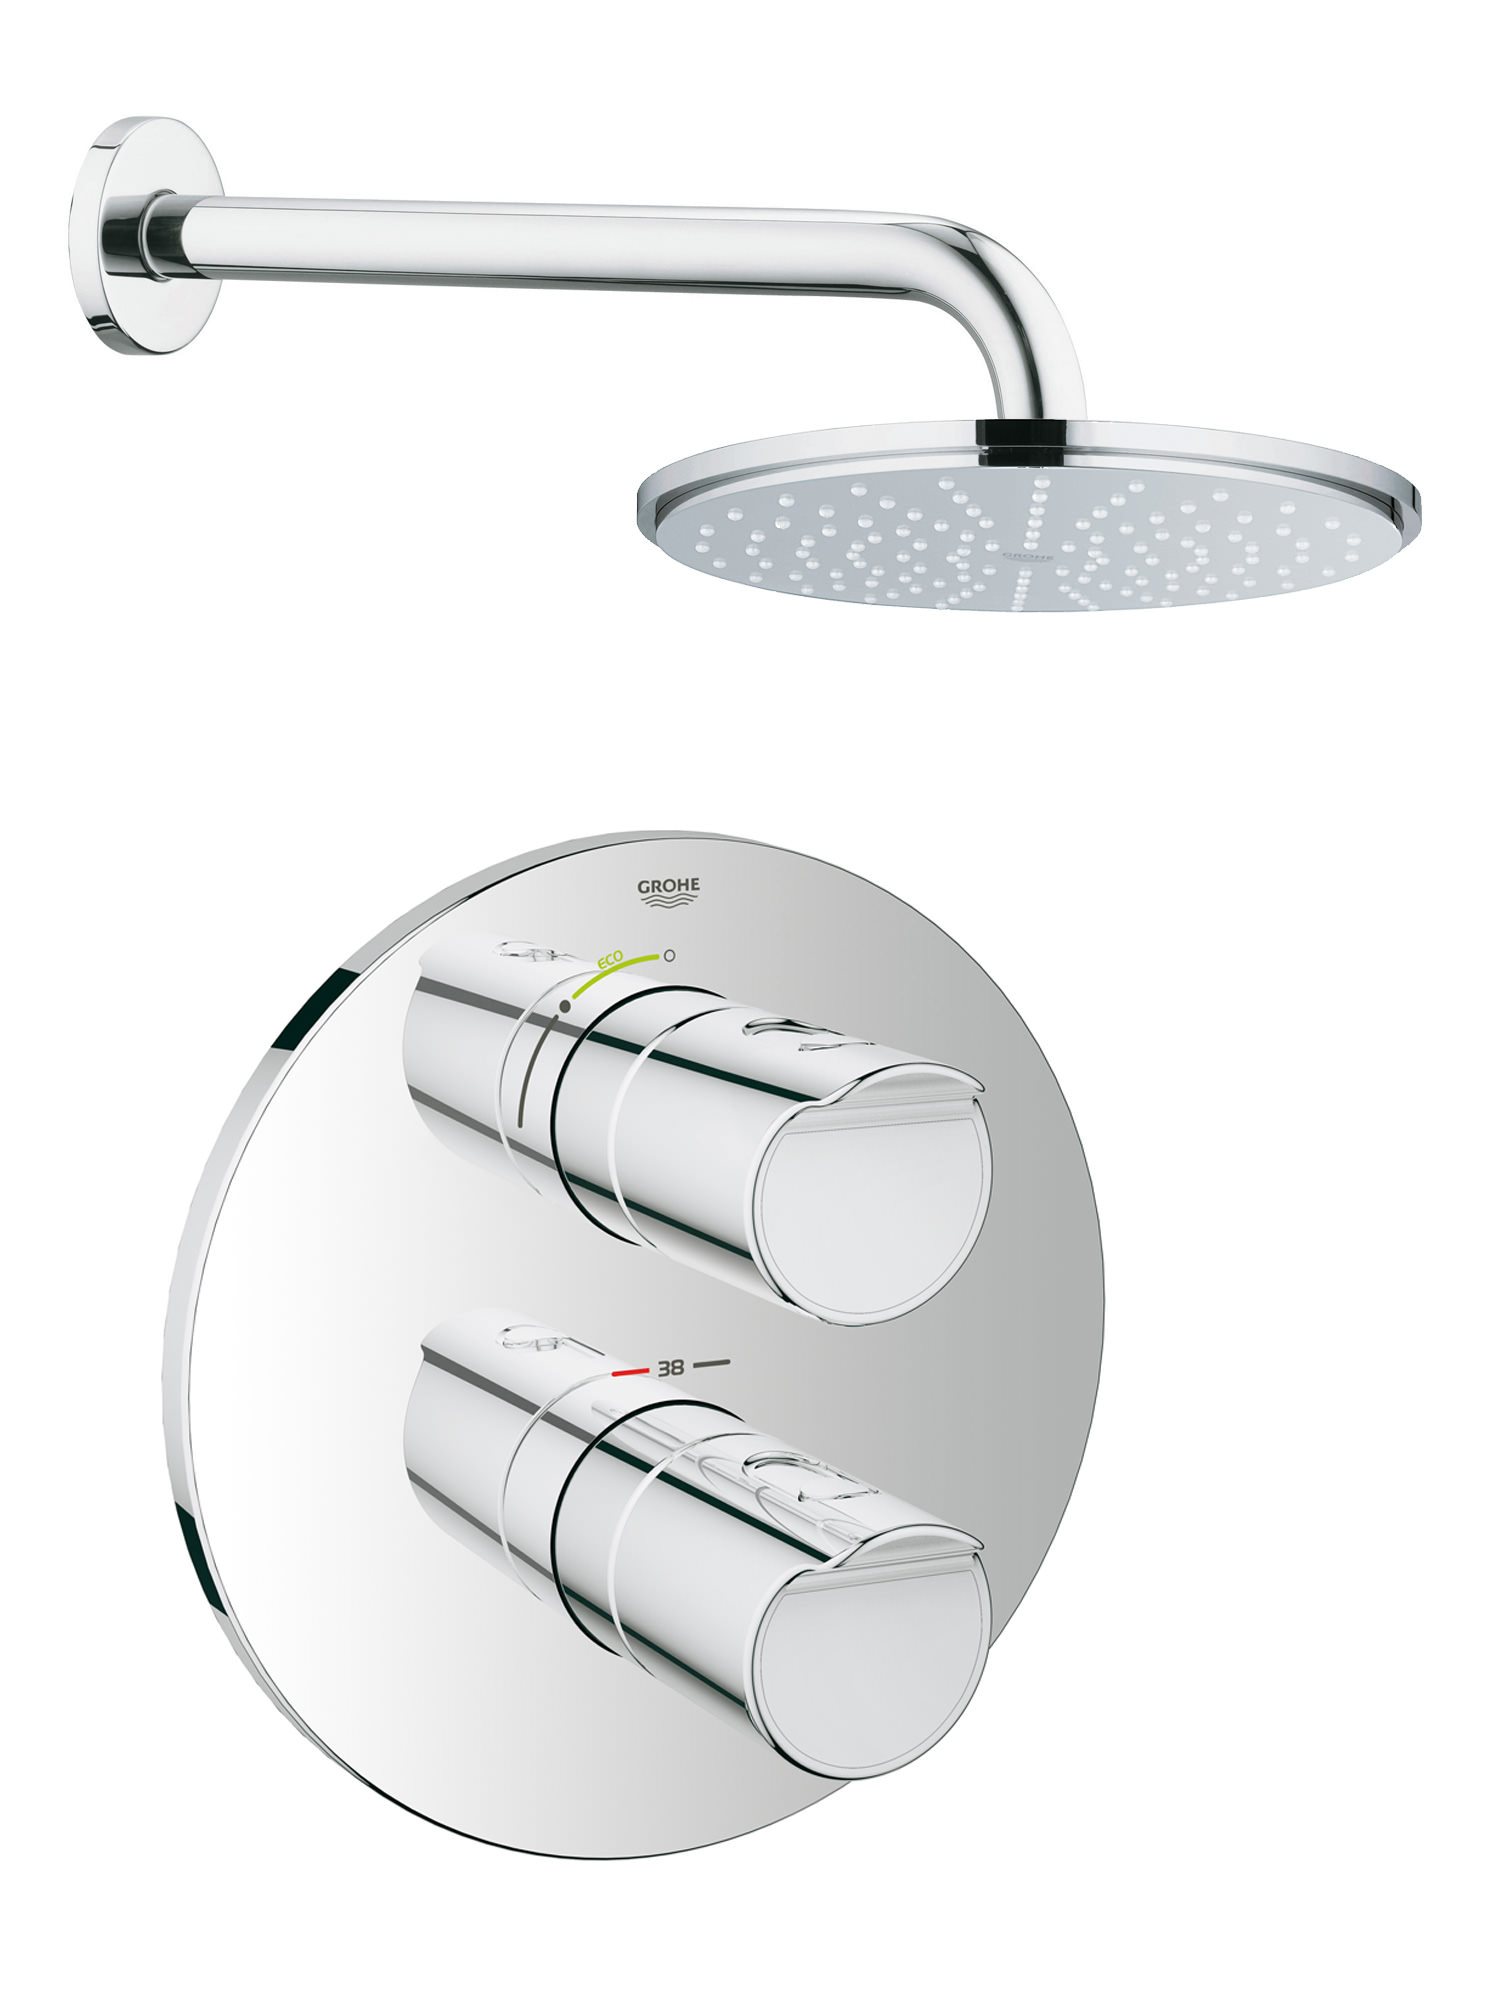 Grohe Grohtherm 3000 Cosmopolitan Rainshower Shower Solution Pack1